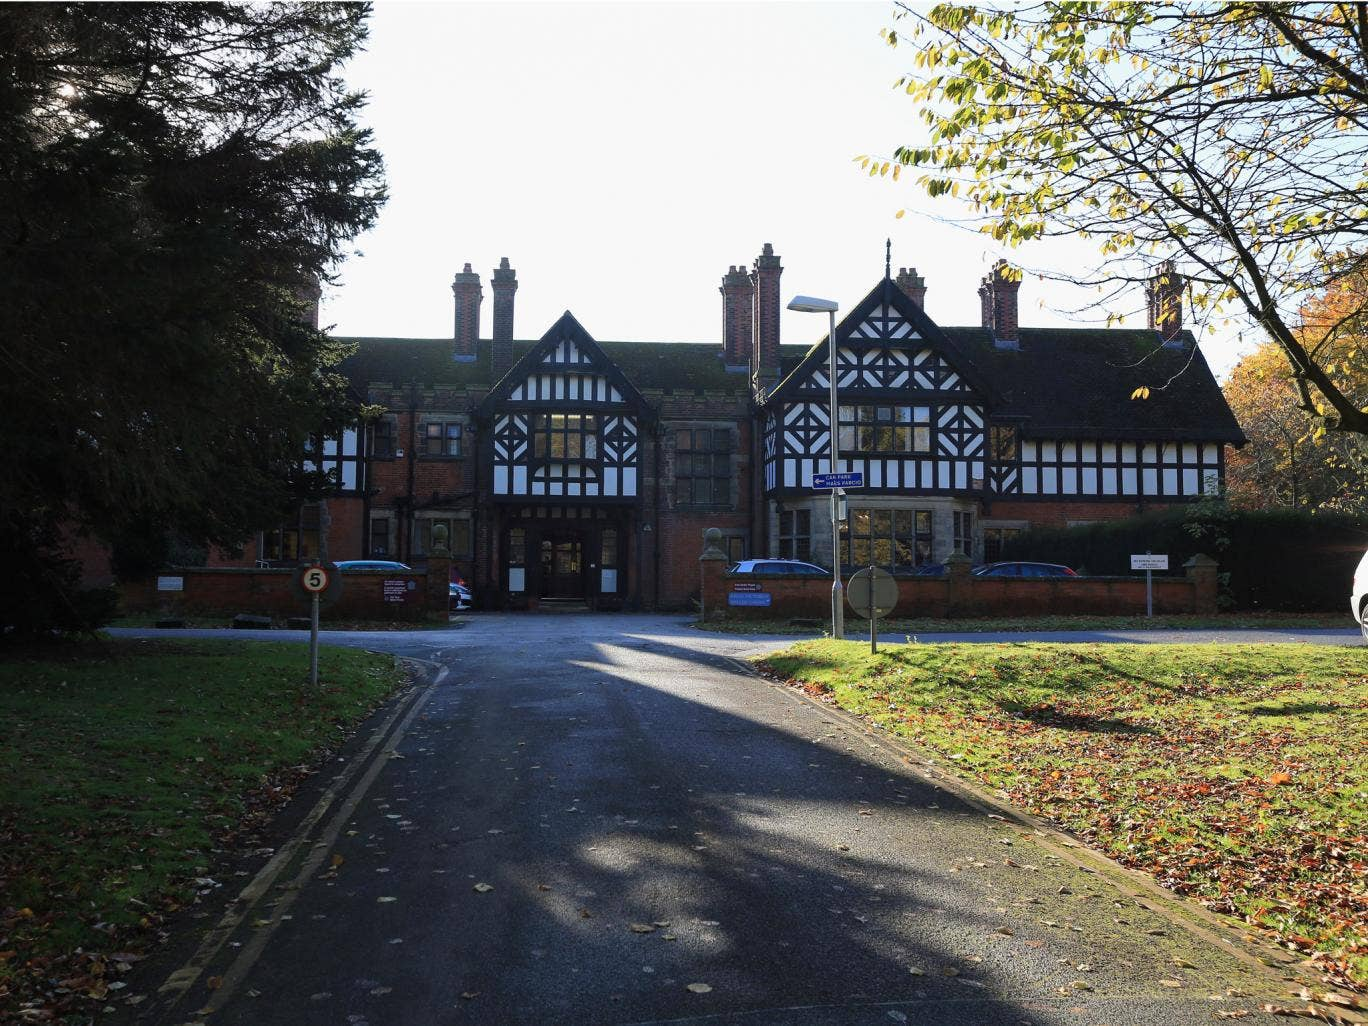 The former Bryn Estyn Children's Home in Wrexham, one of the homes being investigated. A video was released earlier by police where Chief Constable Mark Polin gave a statement regarding new evidence